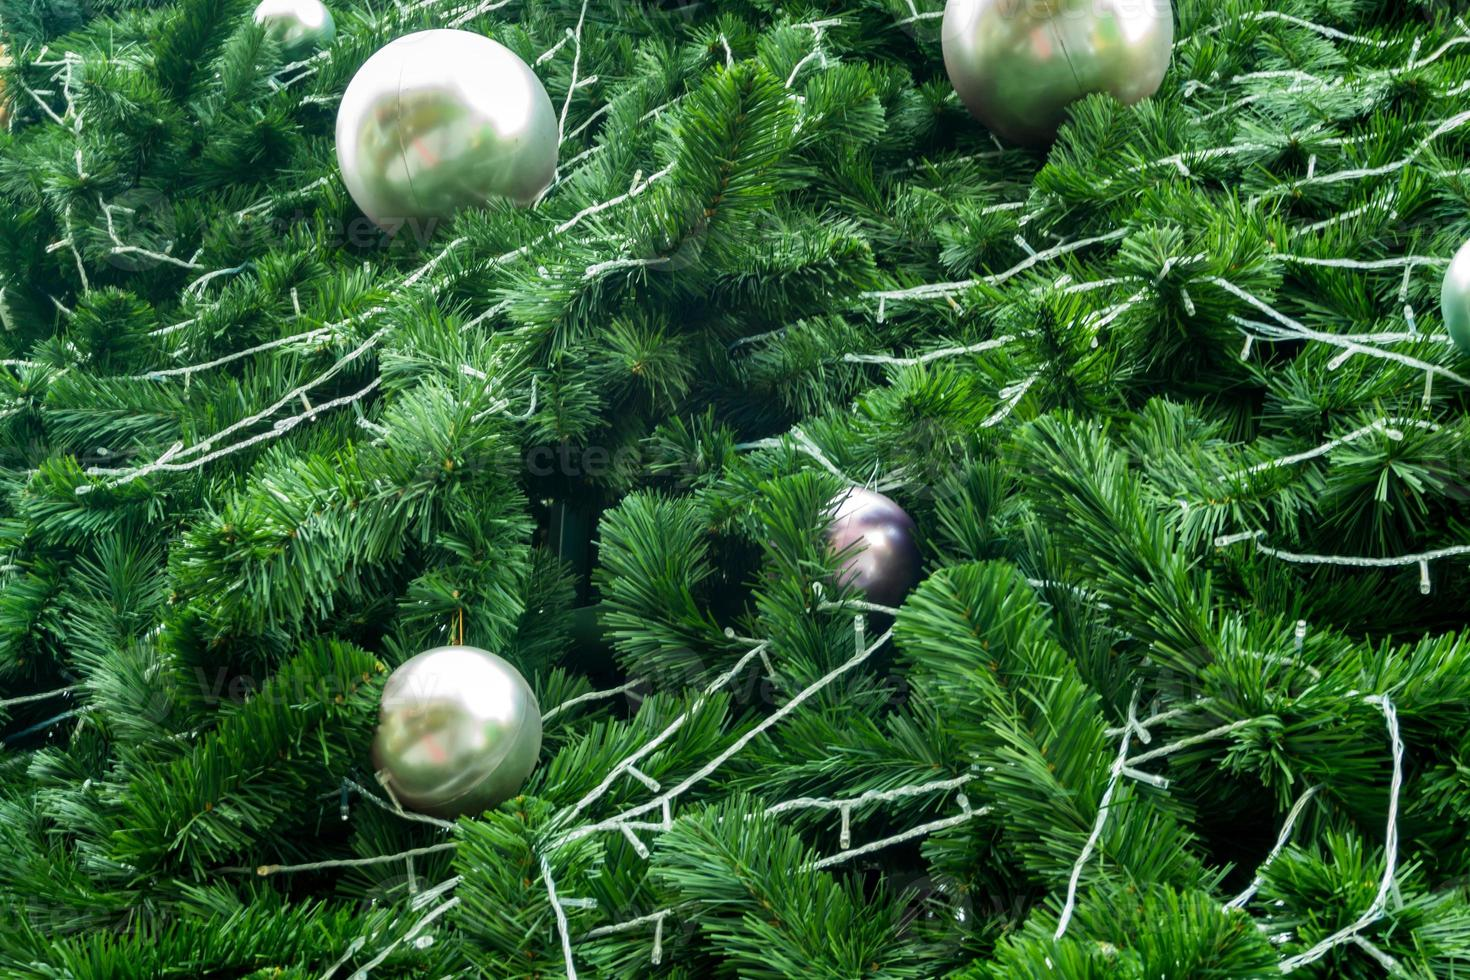 Artificial foliage made from plastic of artificial Christmas tree photo